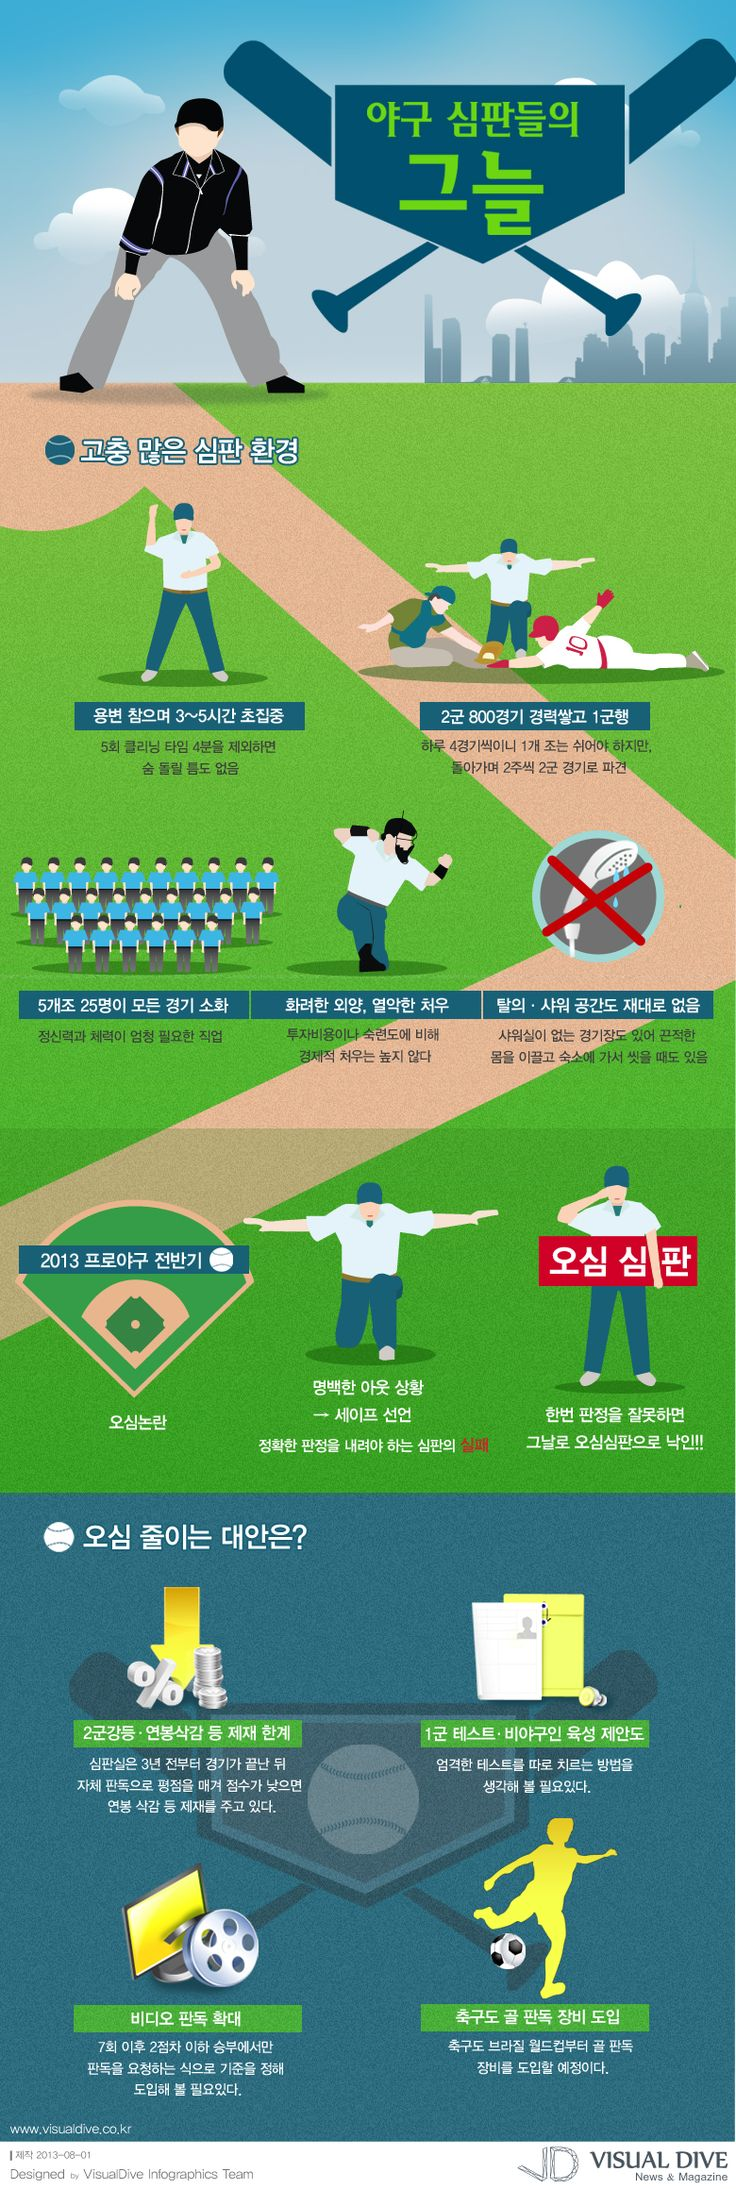 Baseball infographic for Sports infographics templates